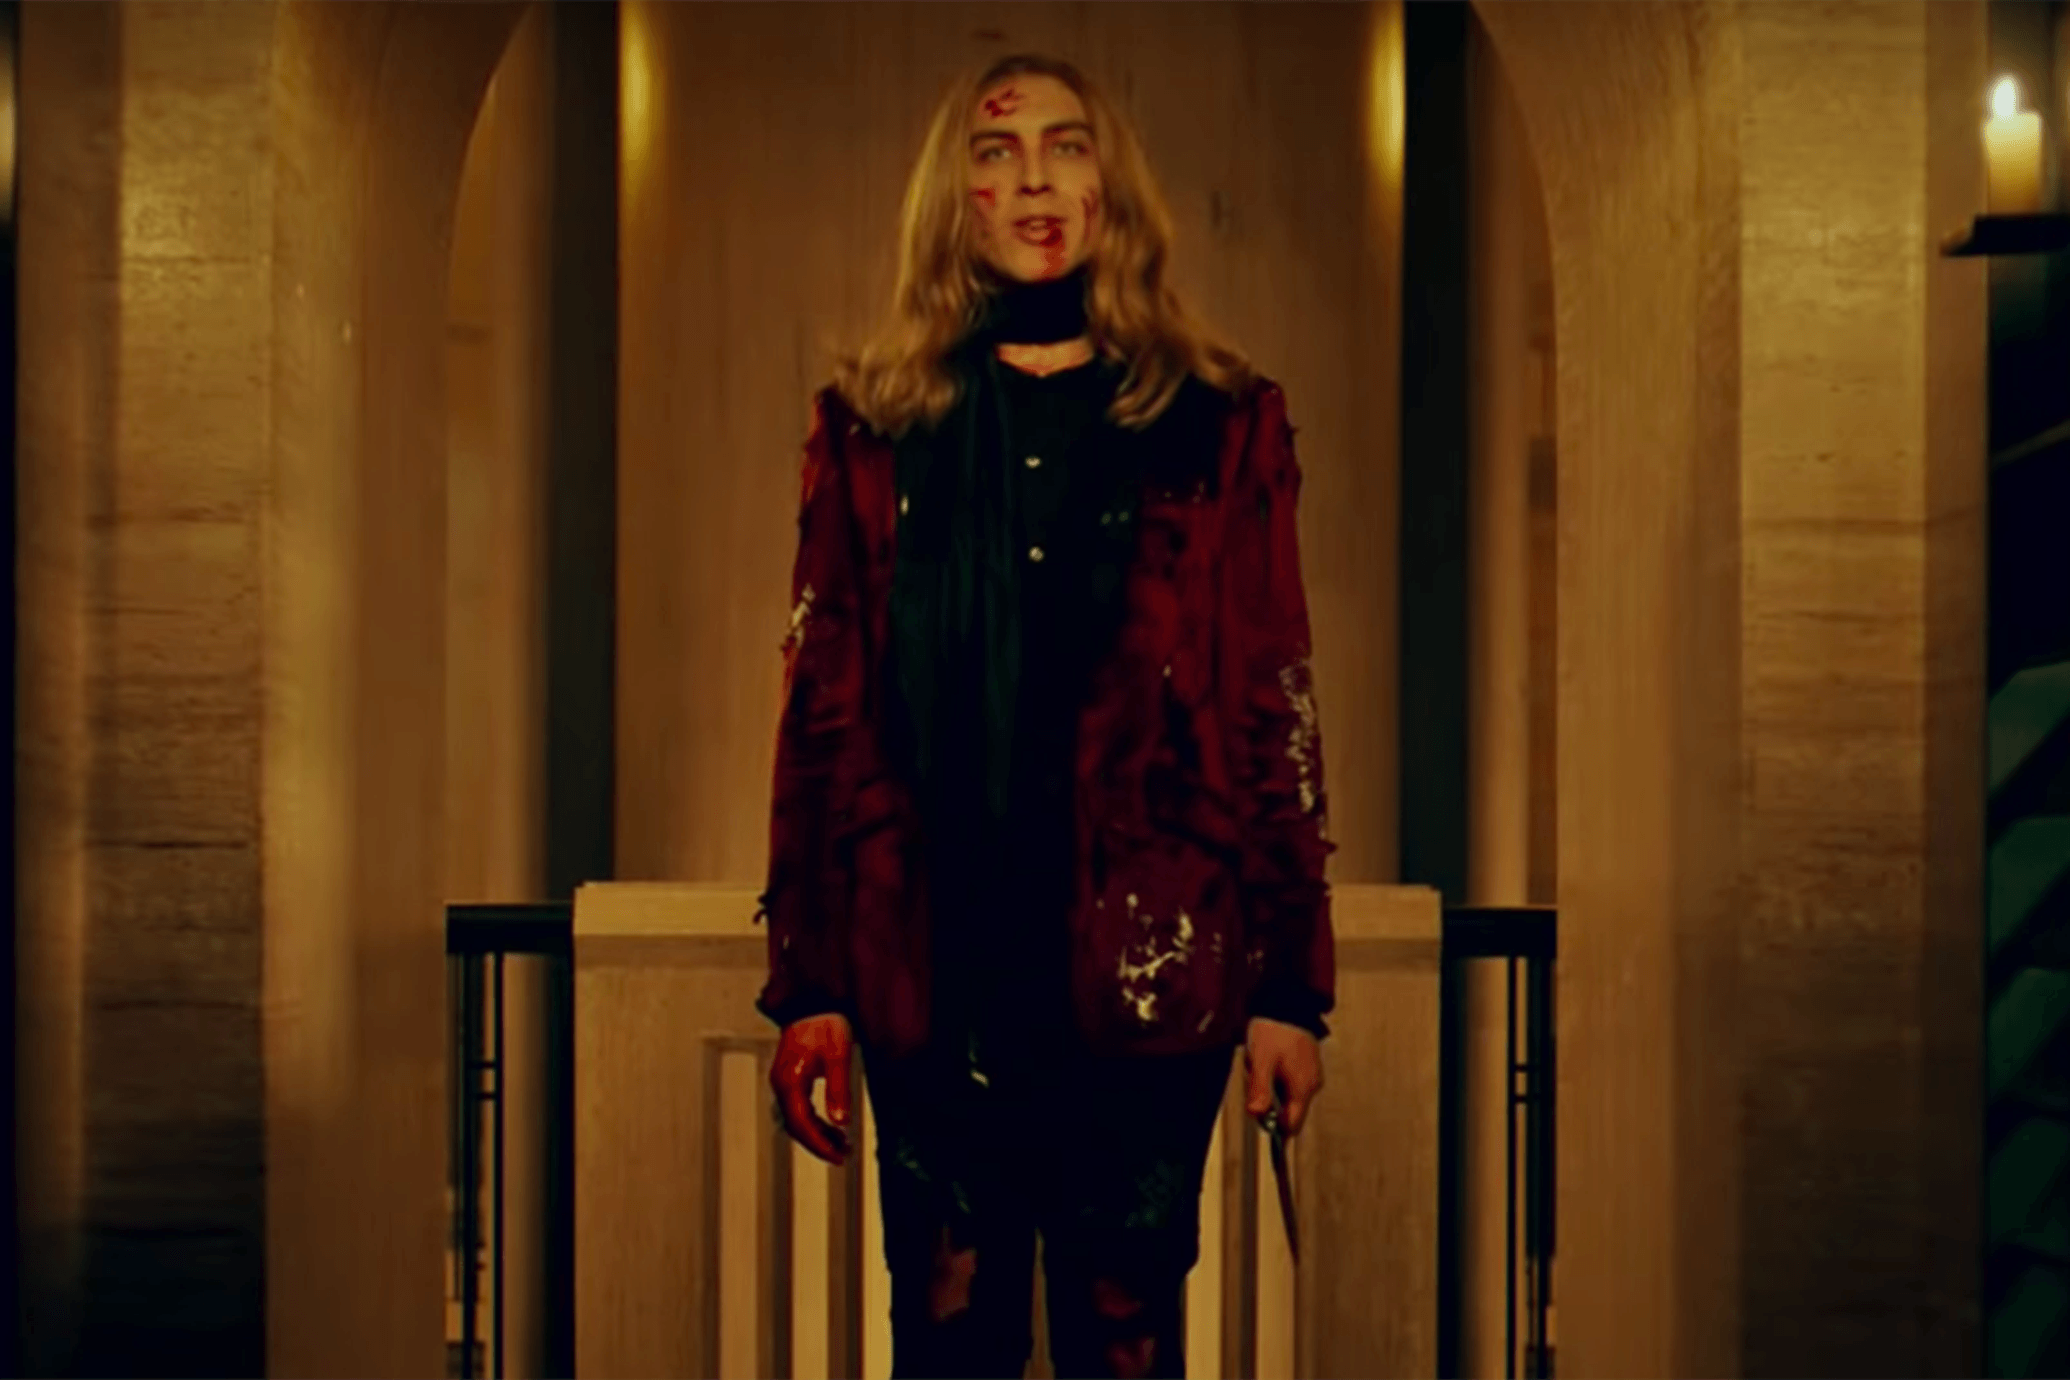 American Horror Story 1984 Season 9 Spoilers: Everything to